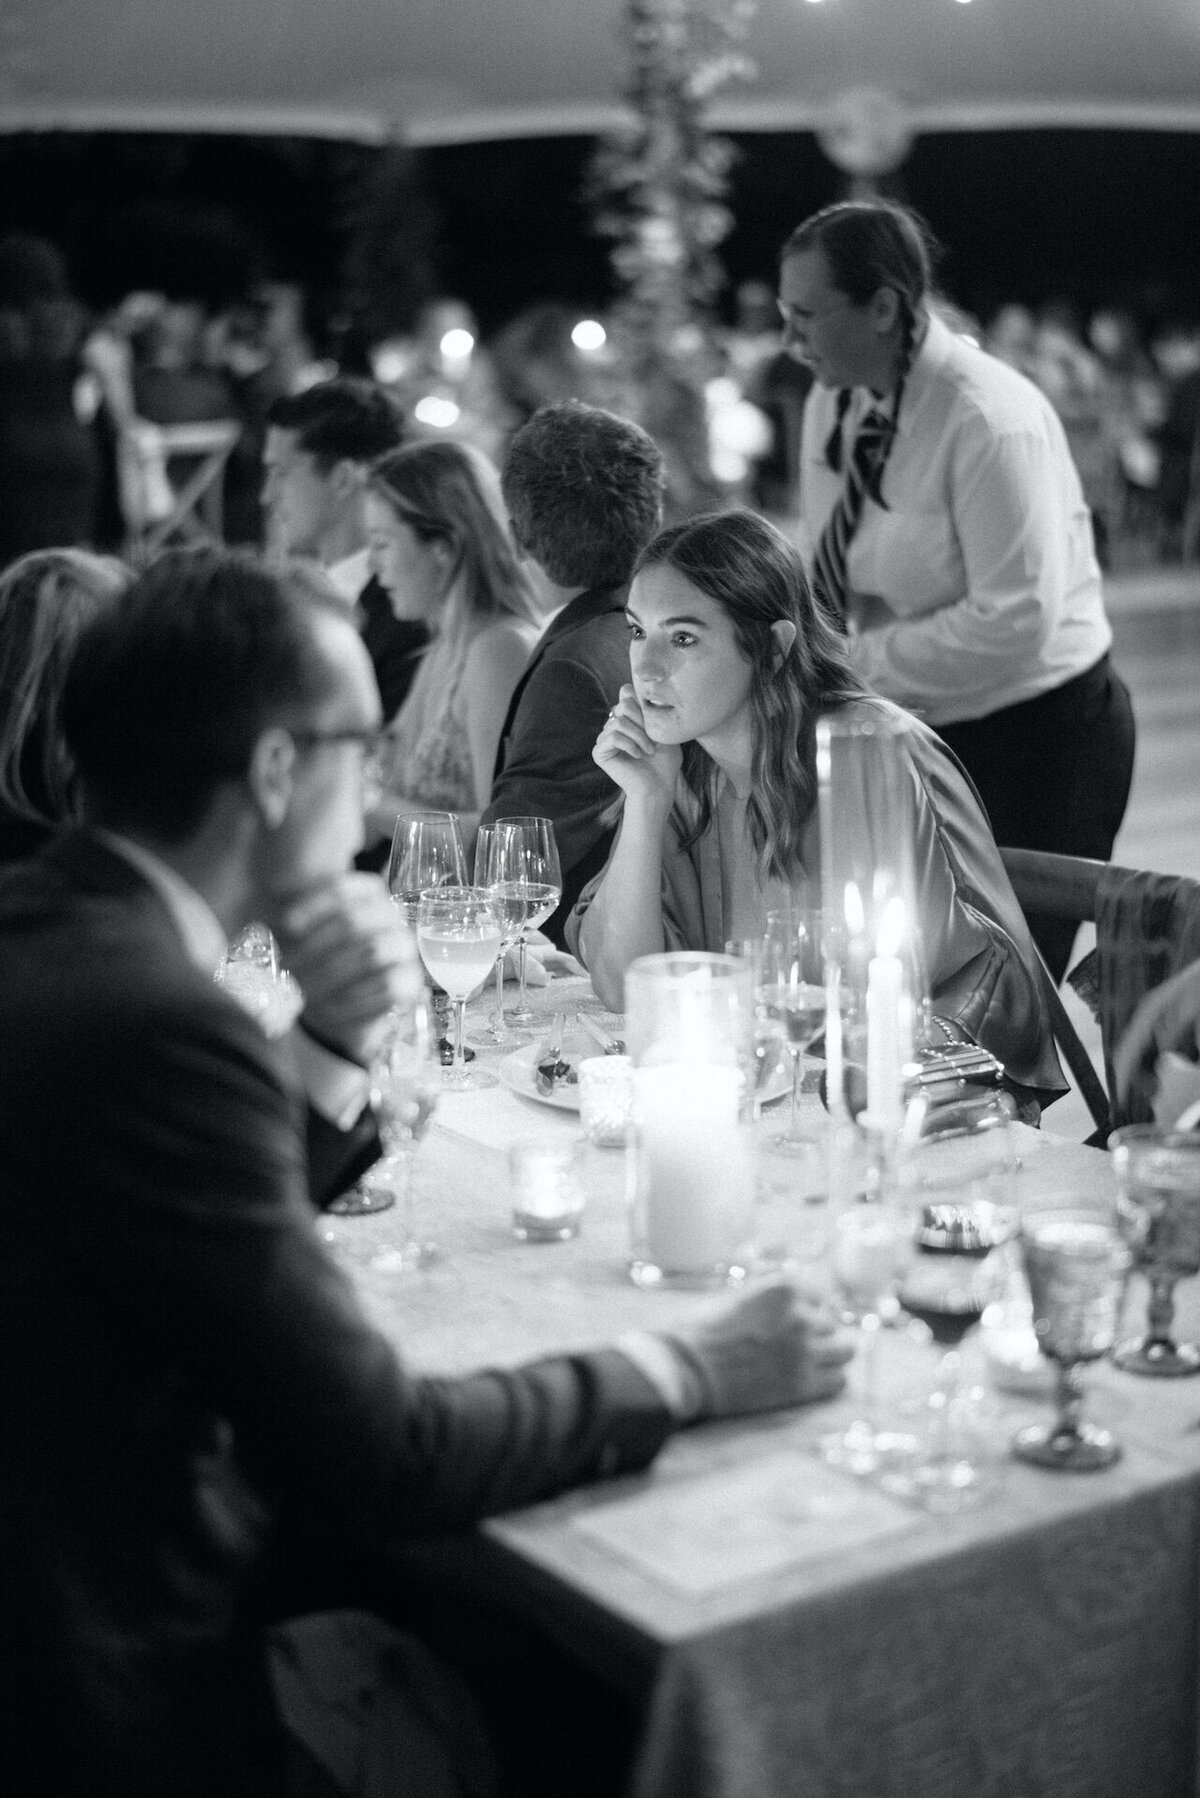 Candid Black and White Wedding Photography by Fine Art Film Photographer Robert Aveau for © Bonnie Sen Photography